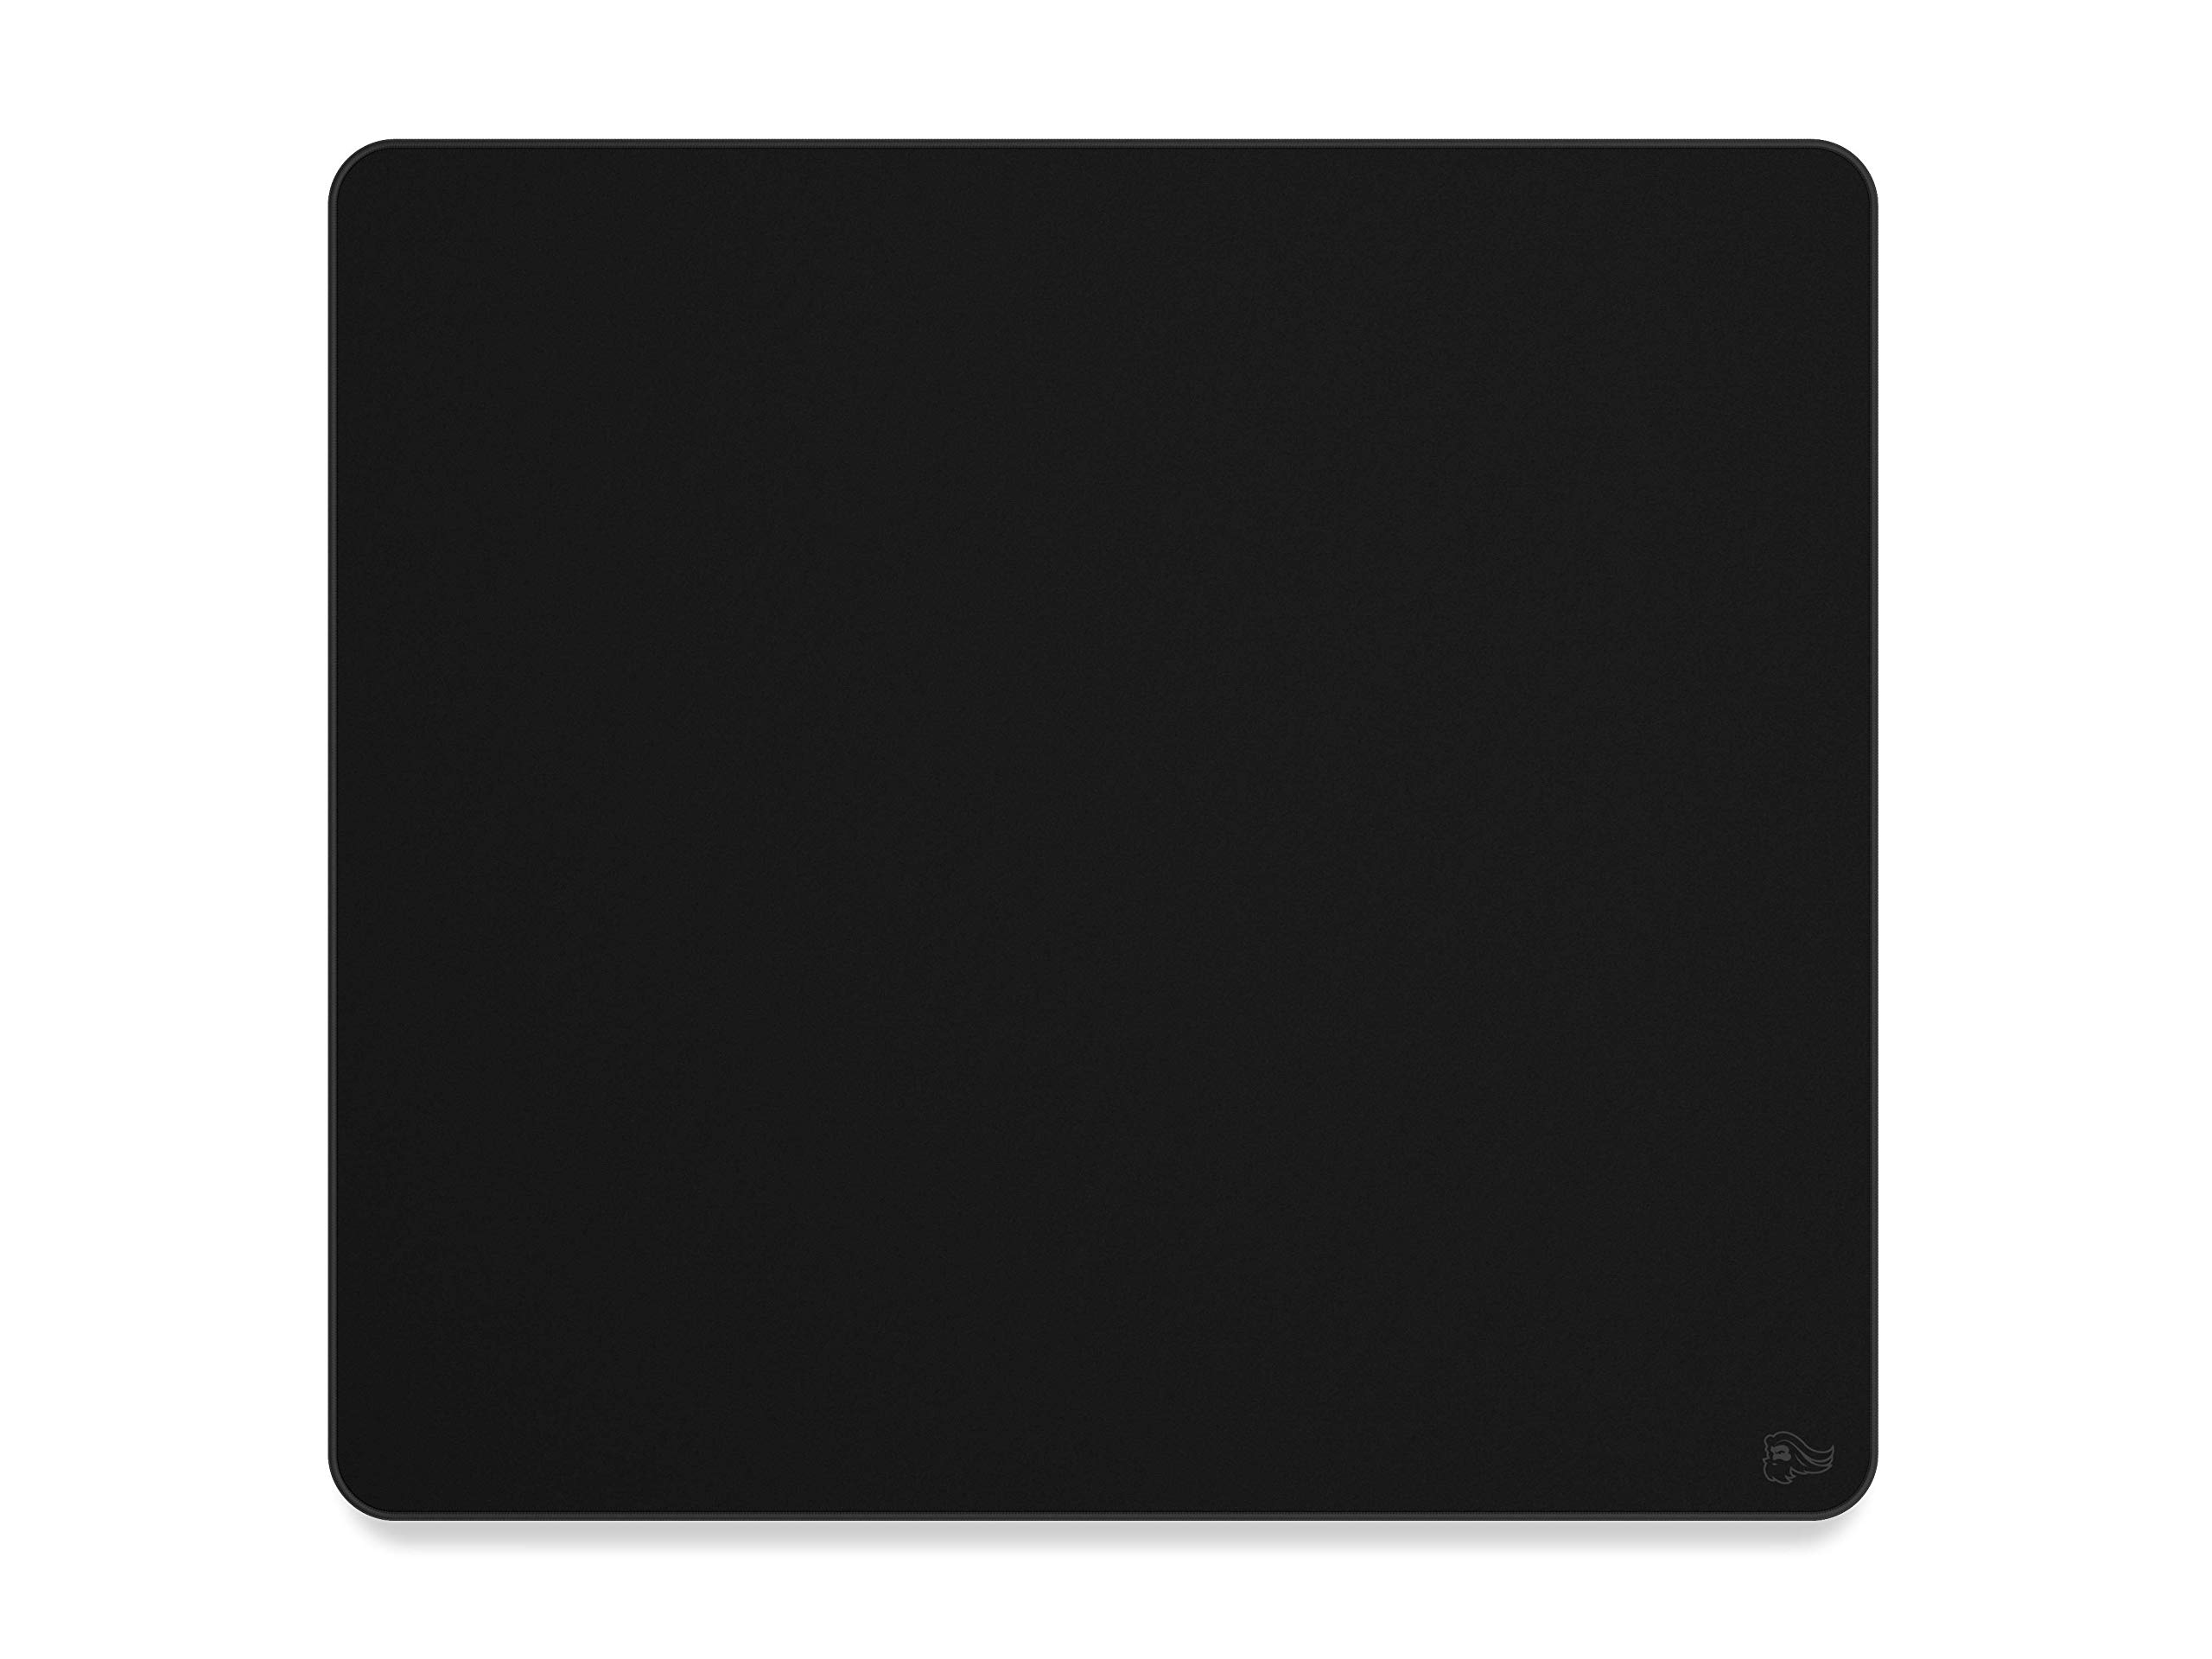 Mousepad XL Glorious XL Heavy Gaming Mouse Mat/Pad - Stealth